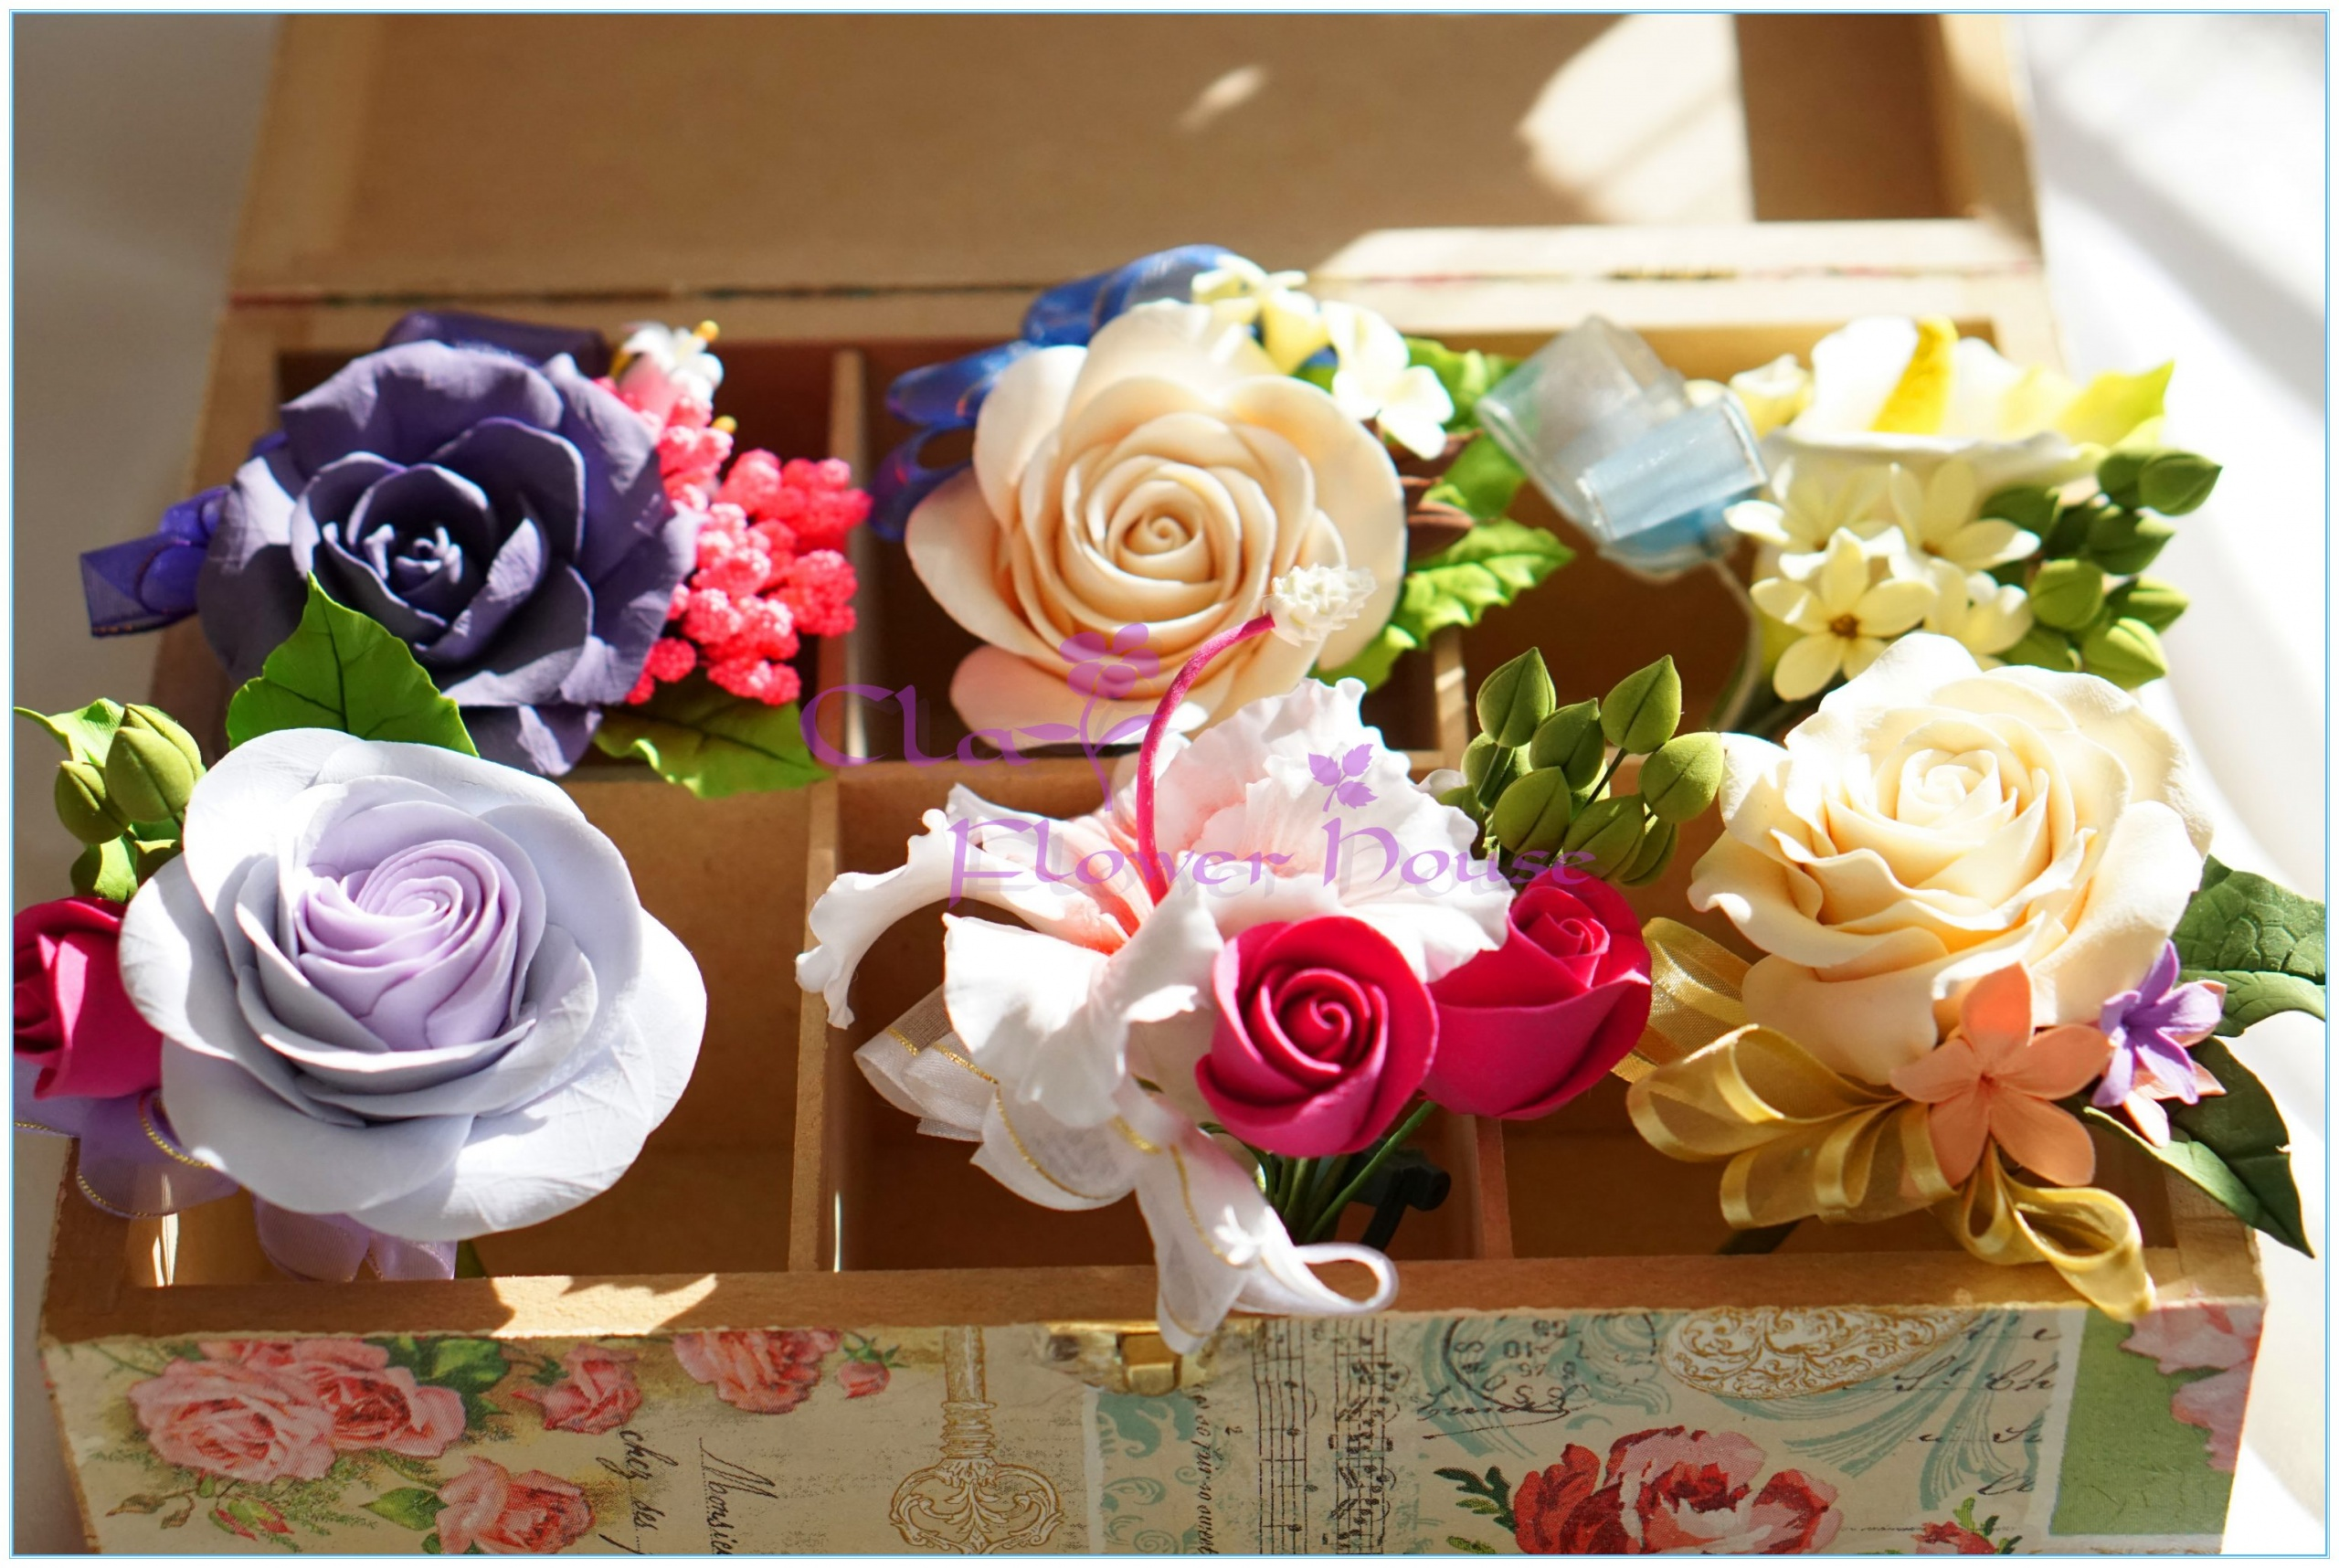 Clay Corsage Boutonnieres